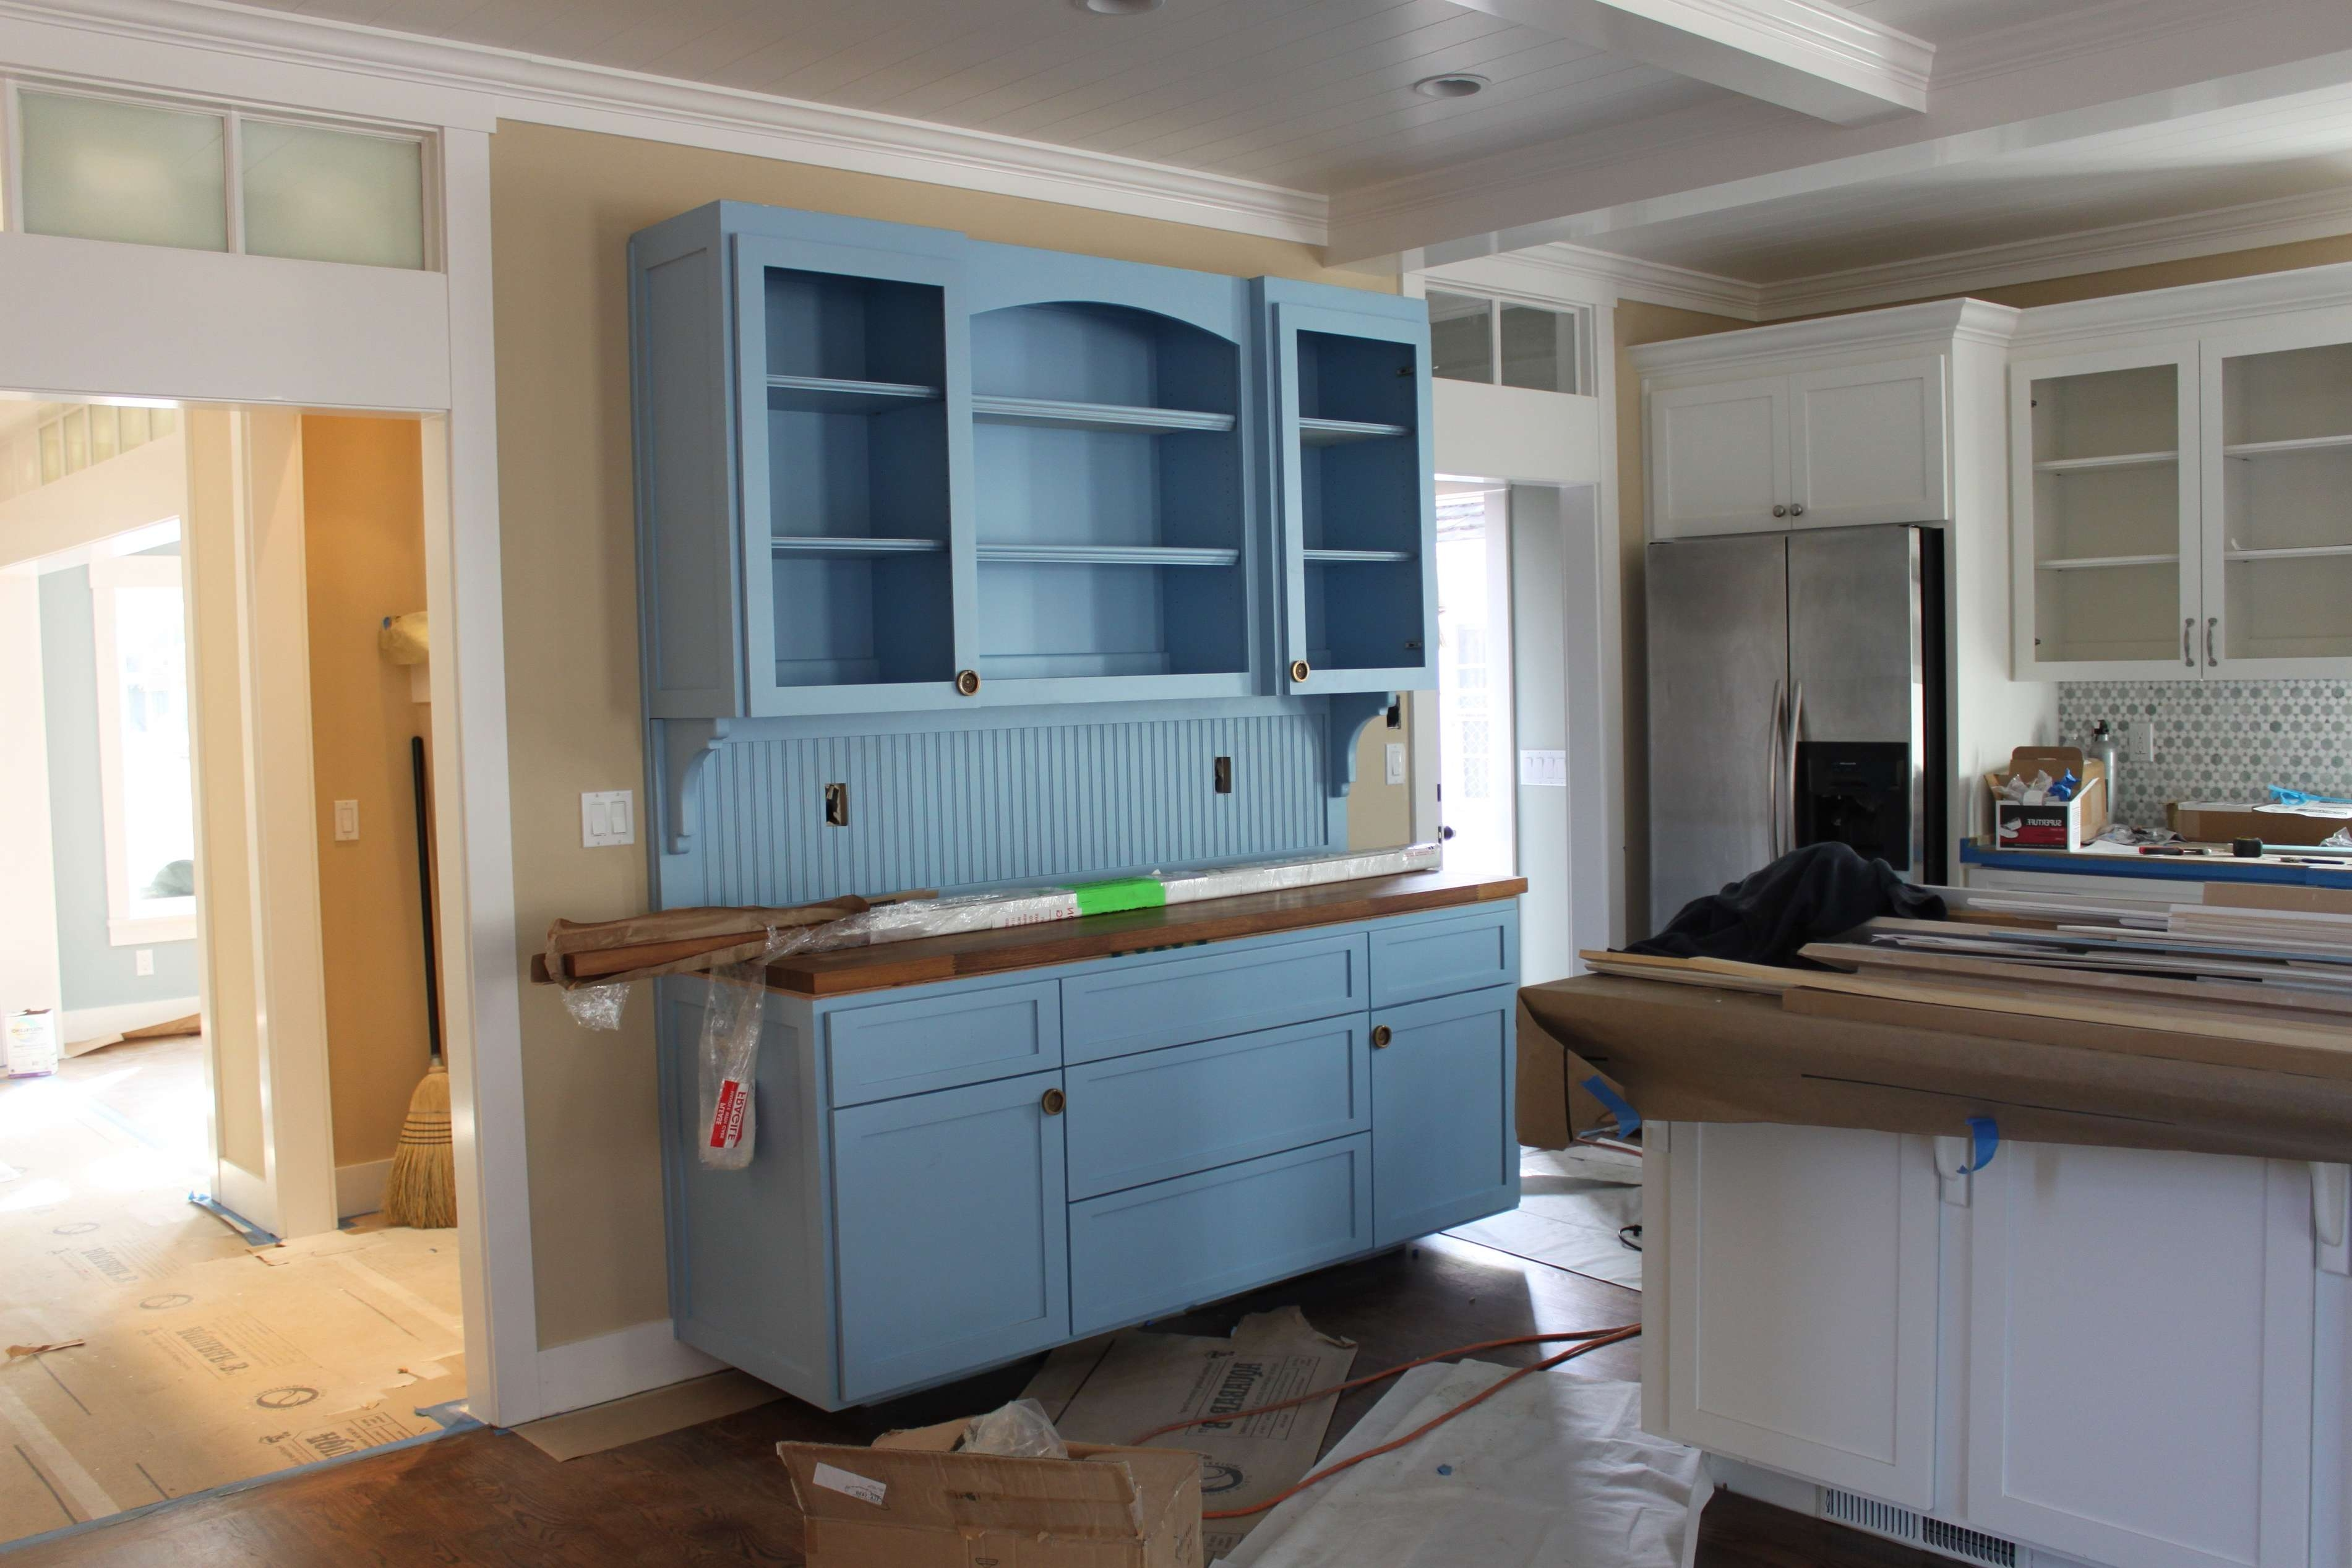 Kitchen Cabinet : Kitchen Cabinets Kitchen Sideboard Buffet With For Cheap Sideboards Cabinets (View 8 of 20)